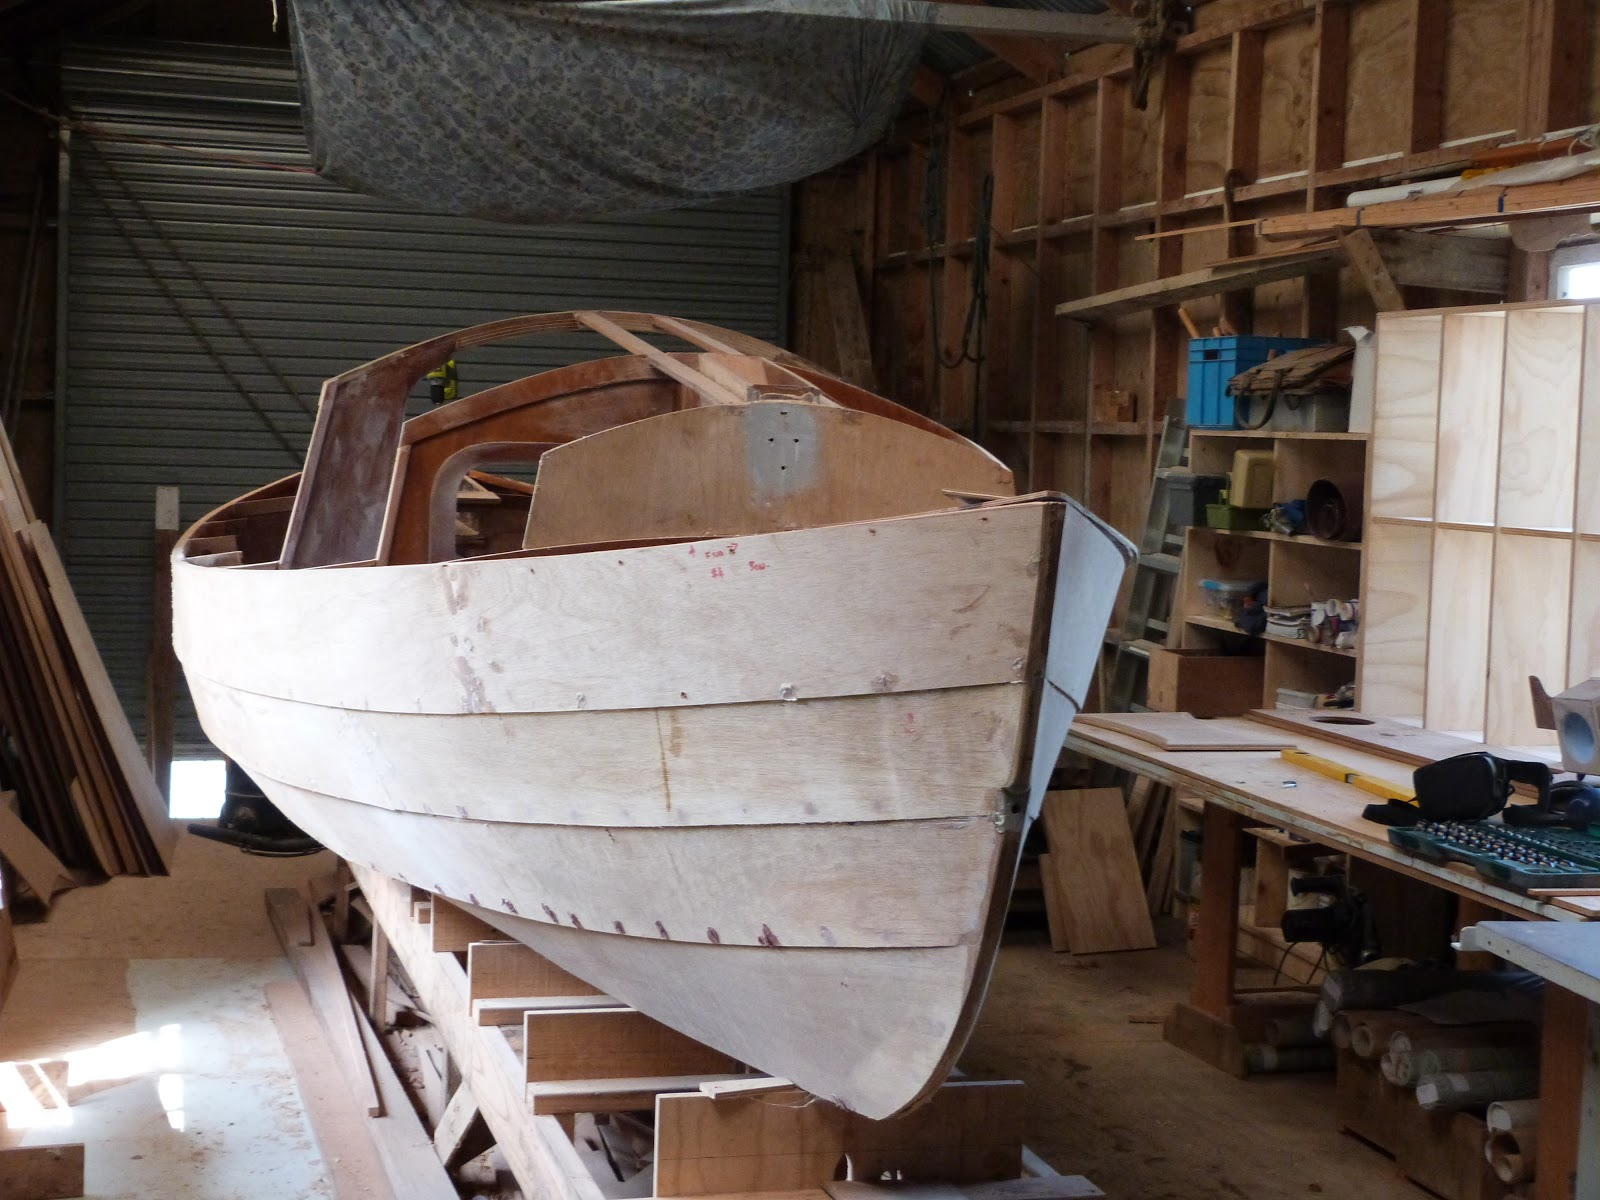 jwboatdesigns Progress on Long Steps work on the ship and grumbles